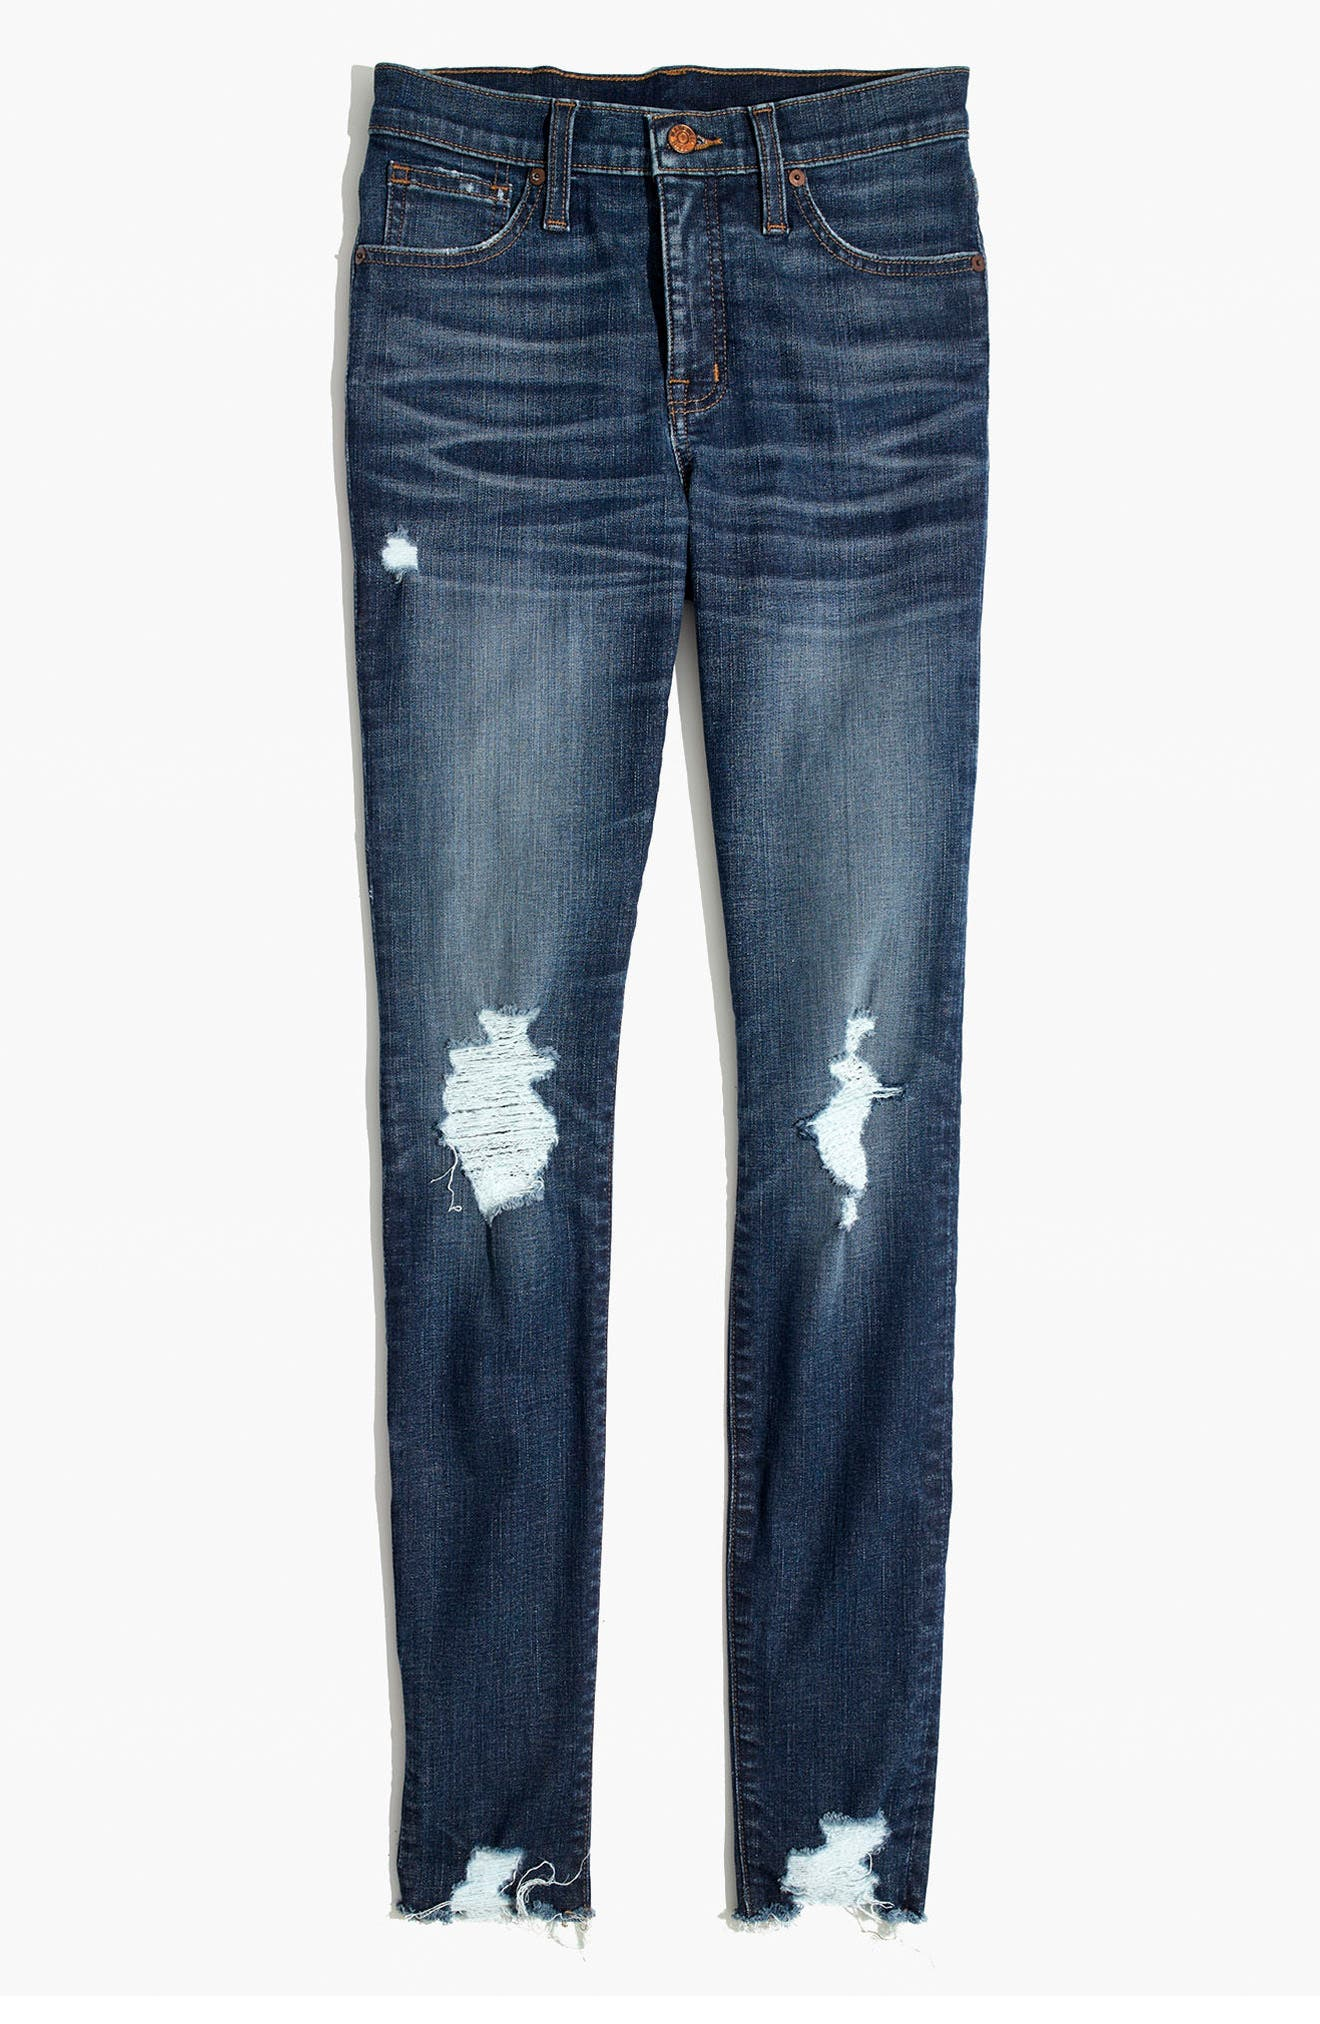 9-Inch High Waist Skinny Jeans,                             Alternate thumbnail 3, color,                             403